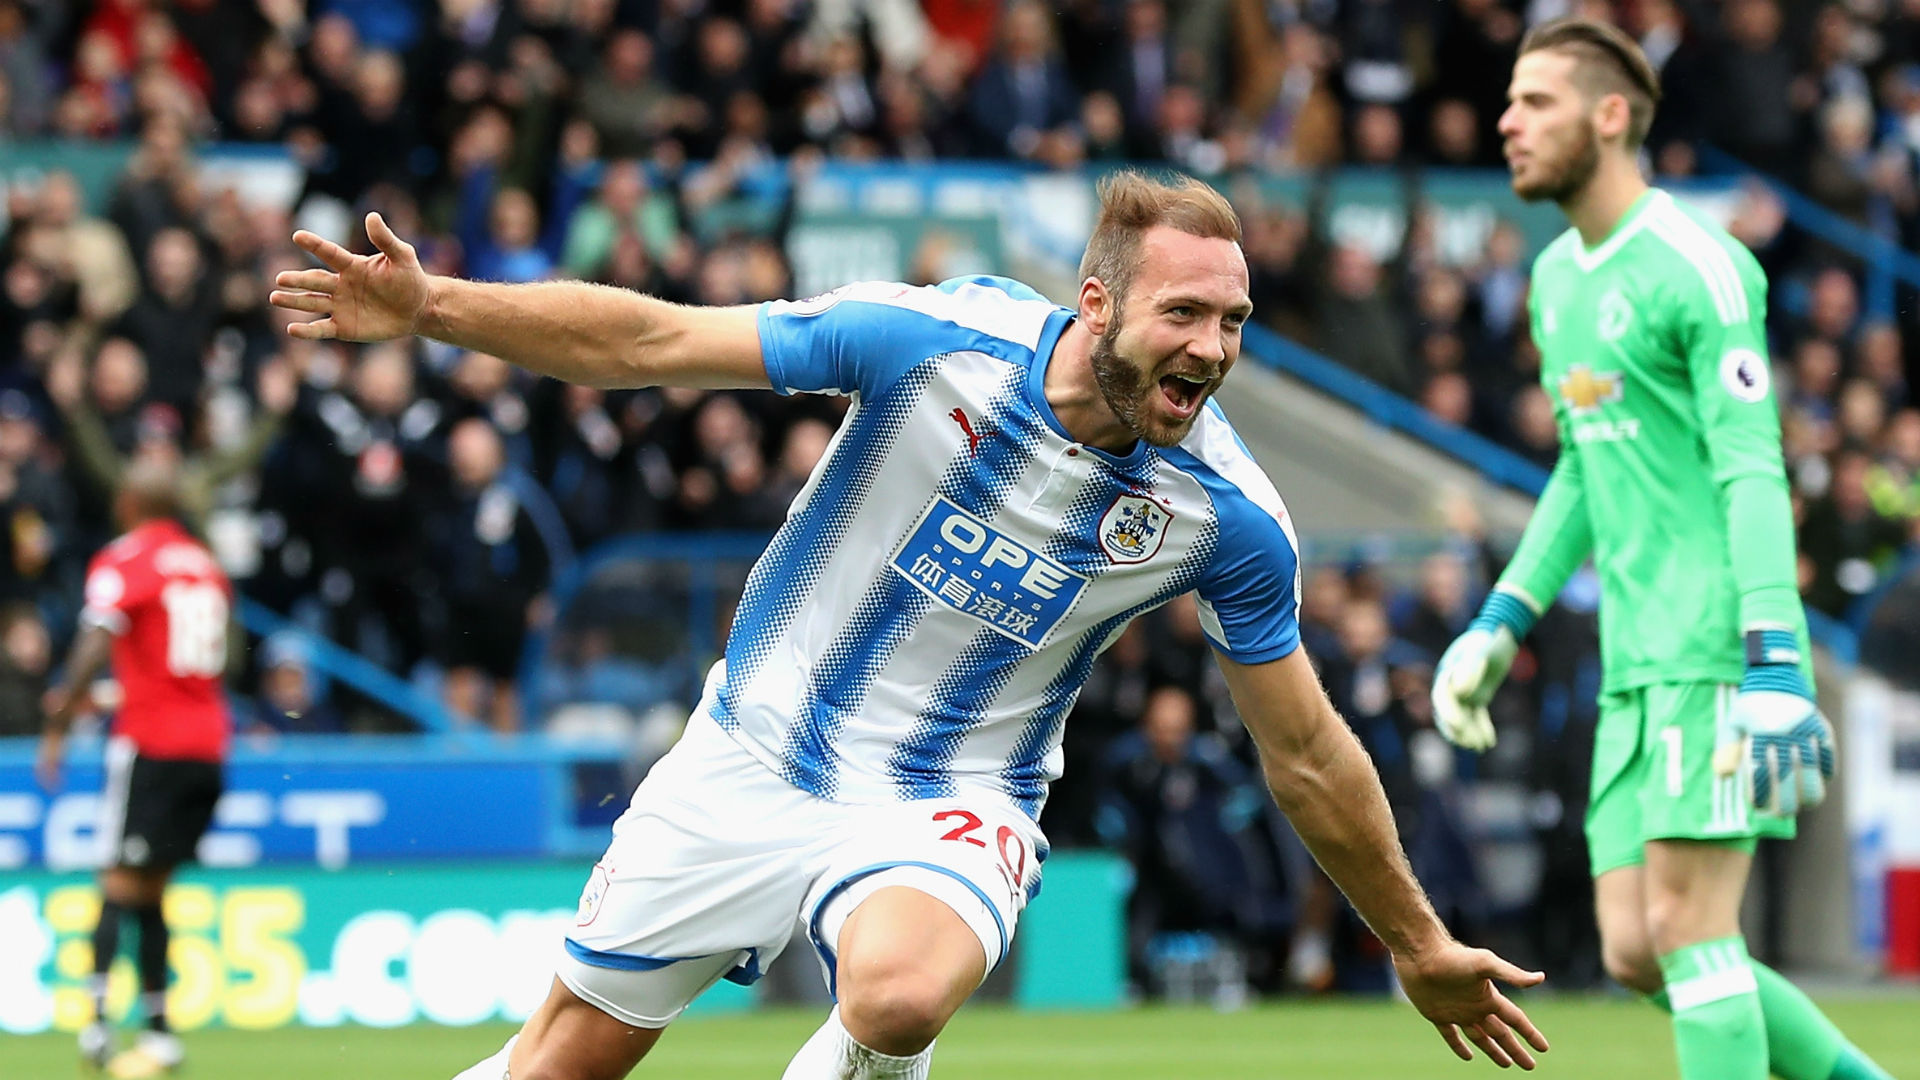 Laurent Depoitre Huddersfield Town Manchester United